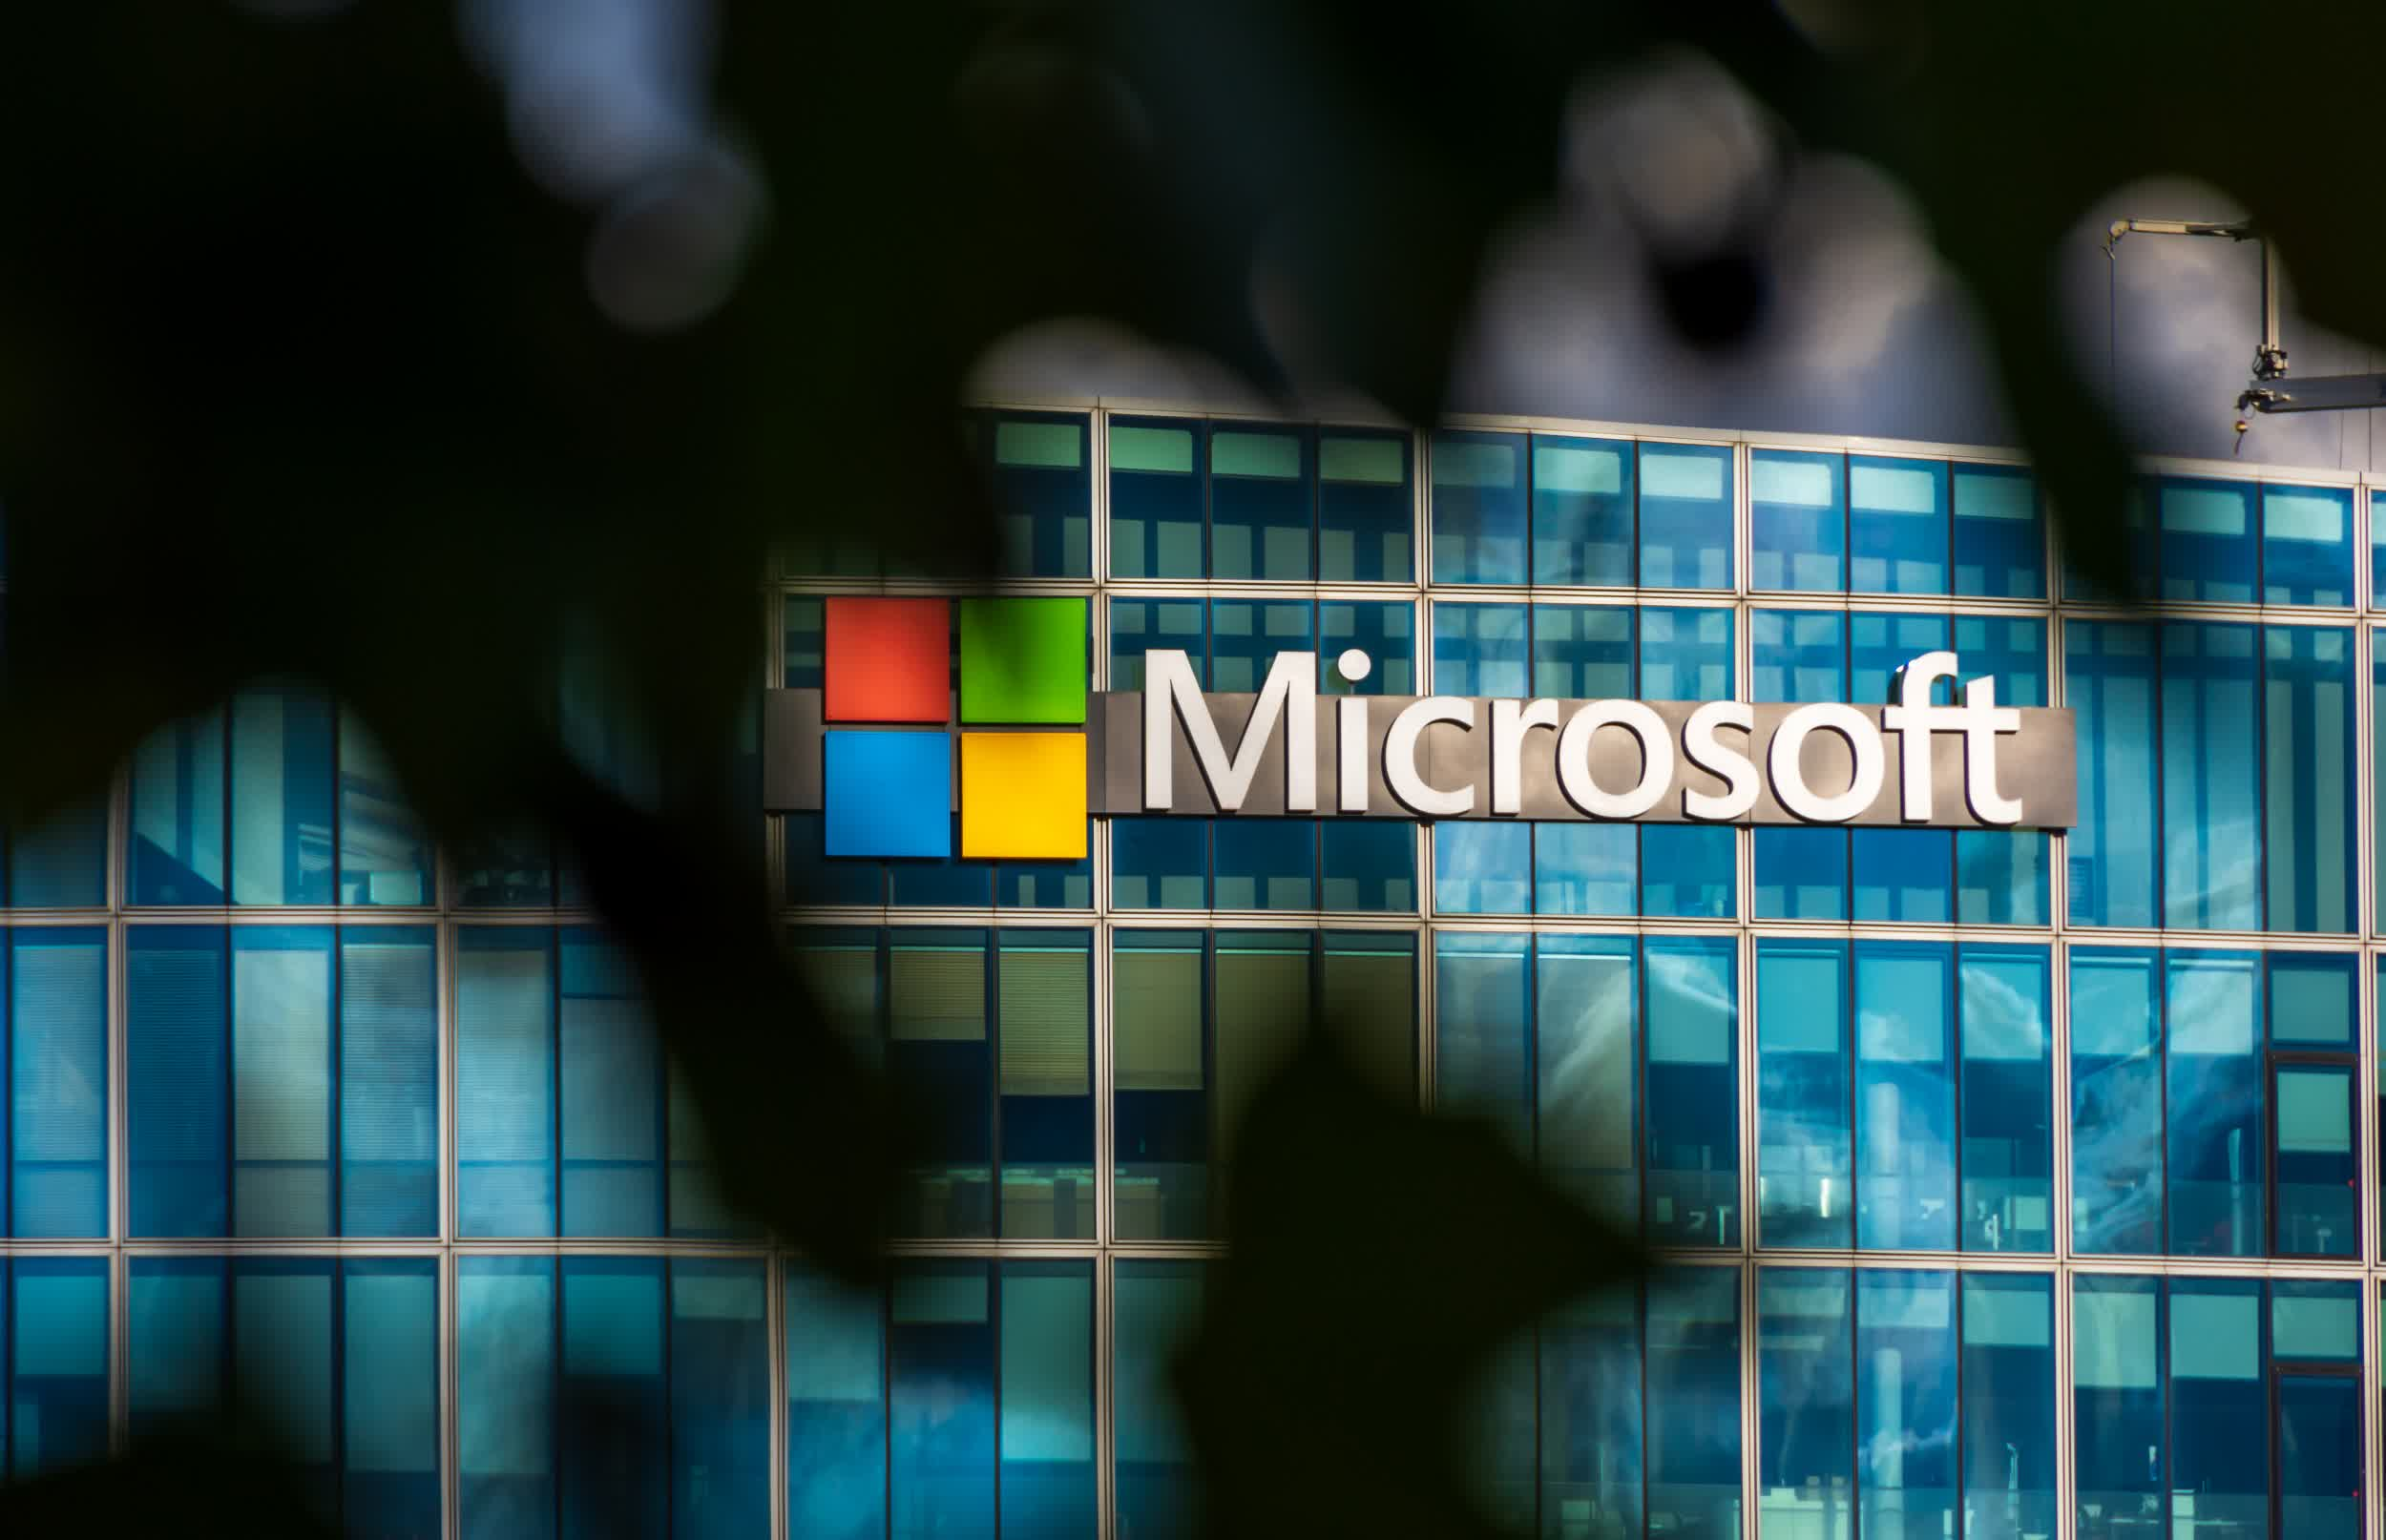 Microsoft awarded $13.6 million to security researchers via bug bounty programs over the past year